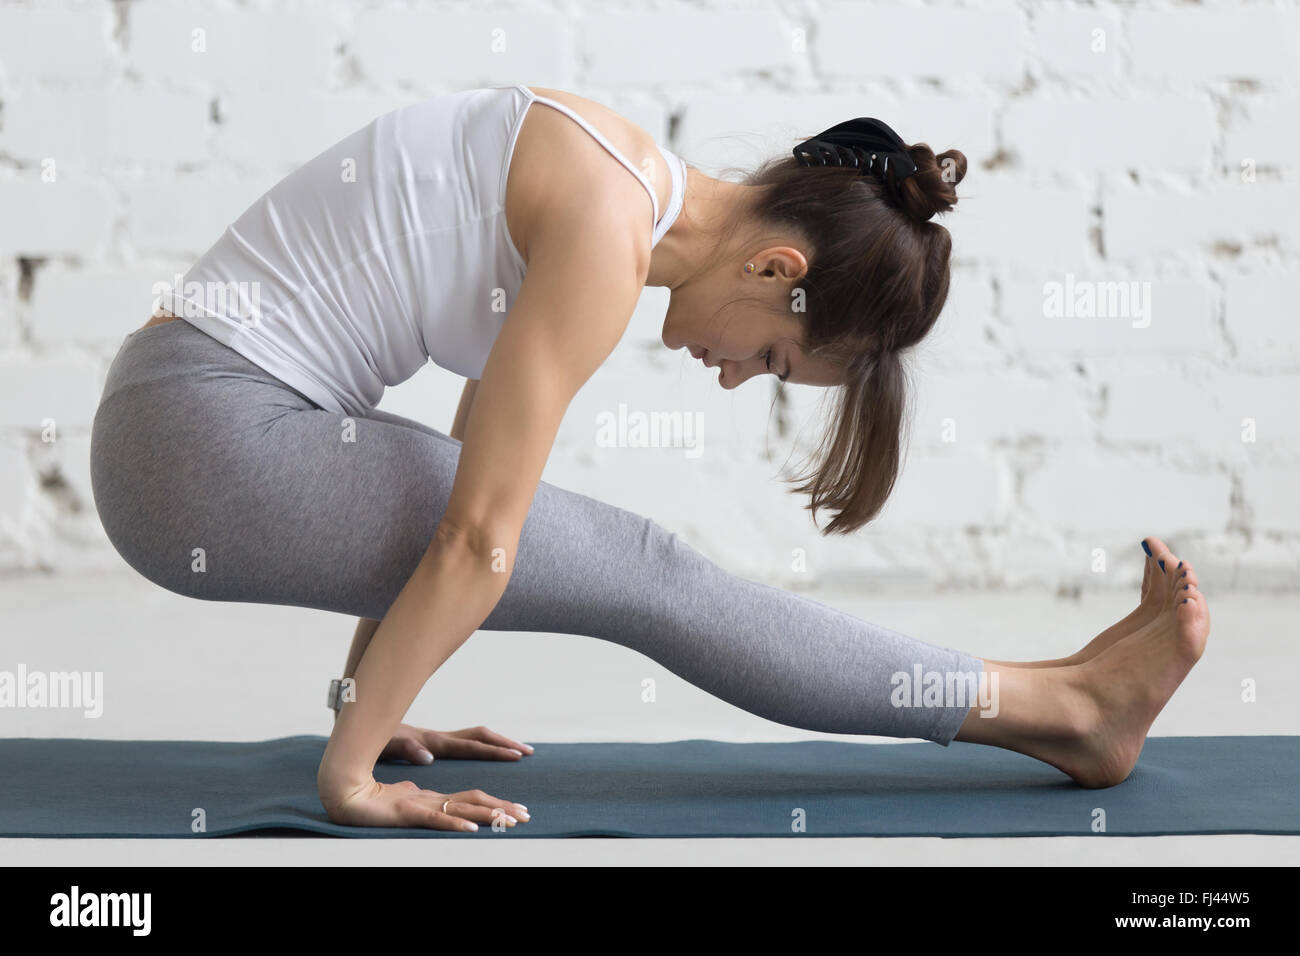 Beautiful young woman working out in loft interior on blue mat, doing yoga exercise for strong arms and abs, full - Stock Image